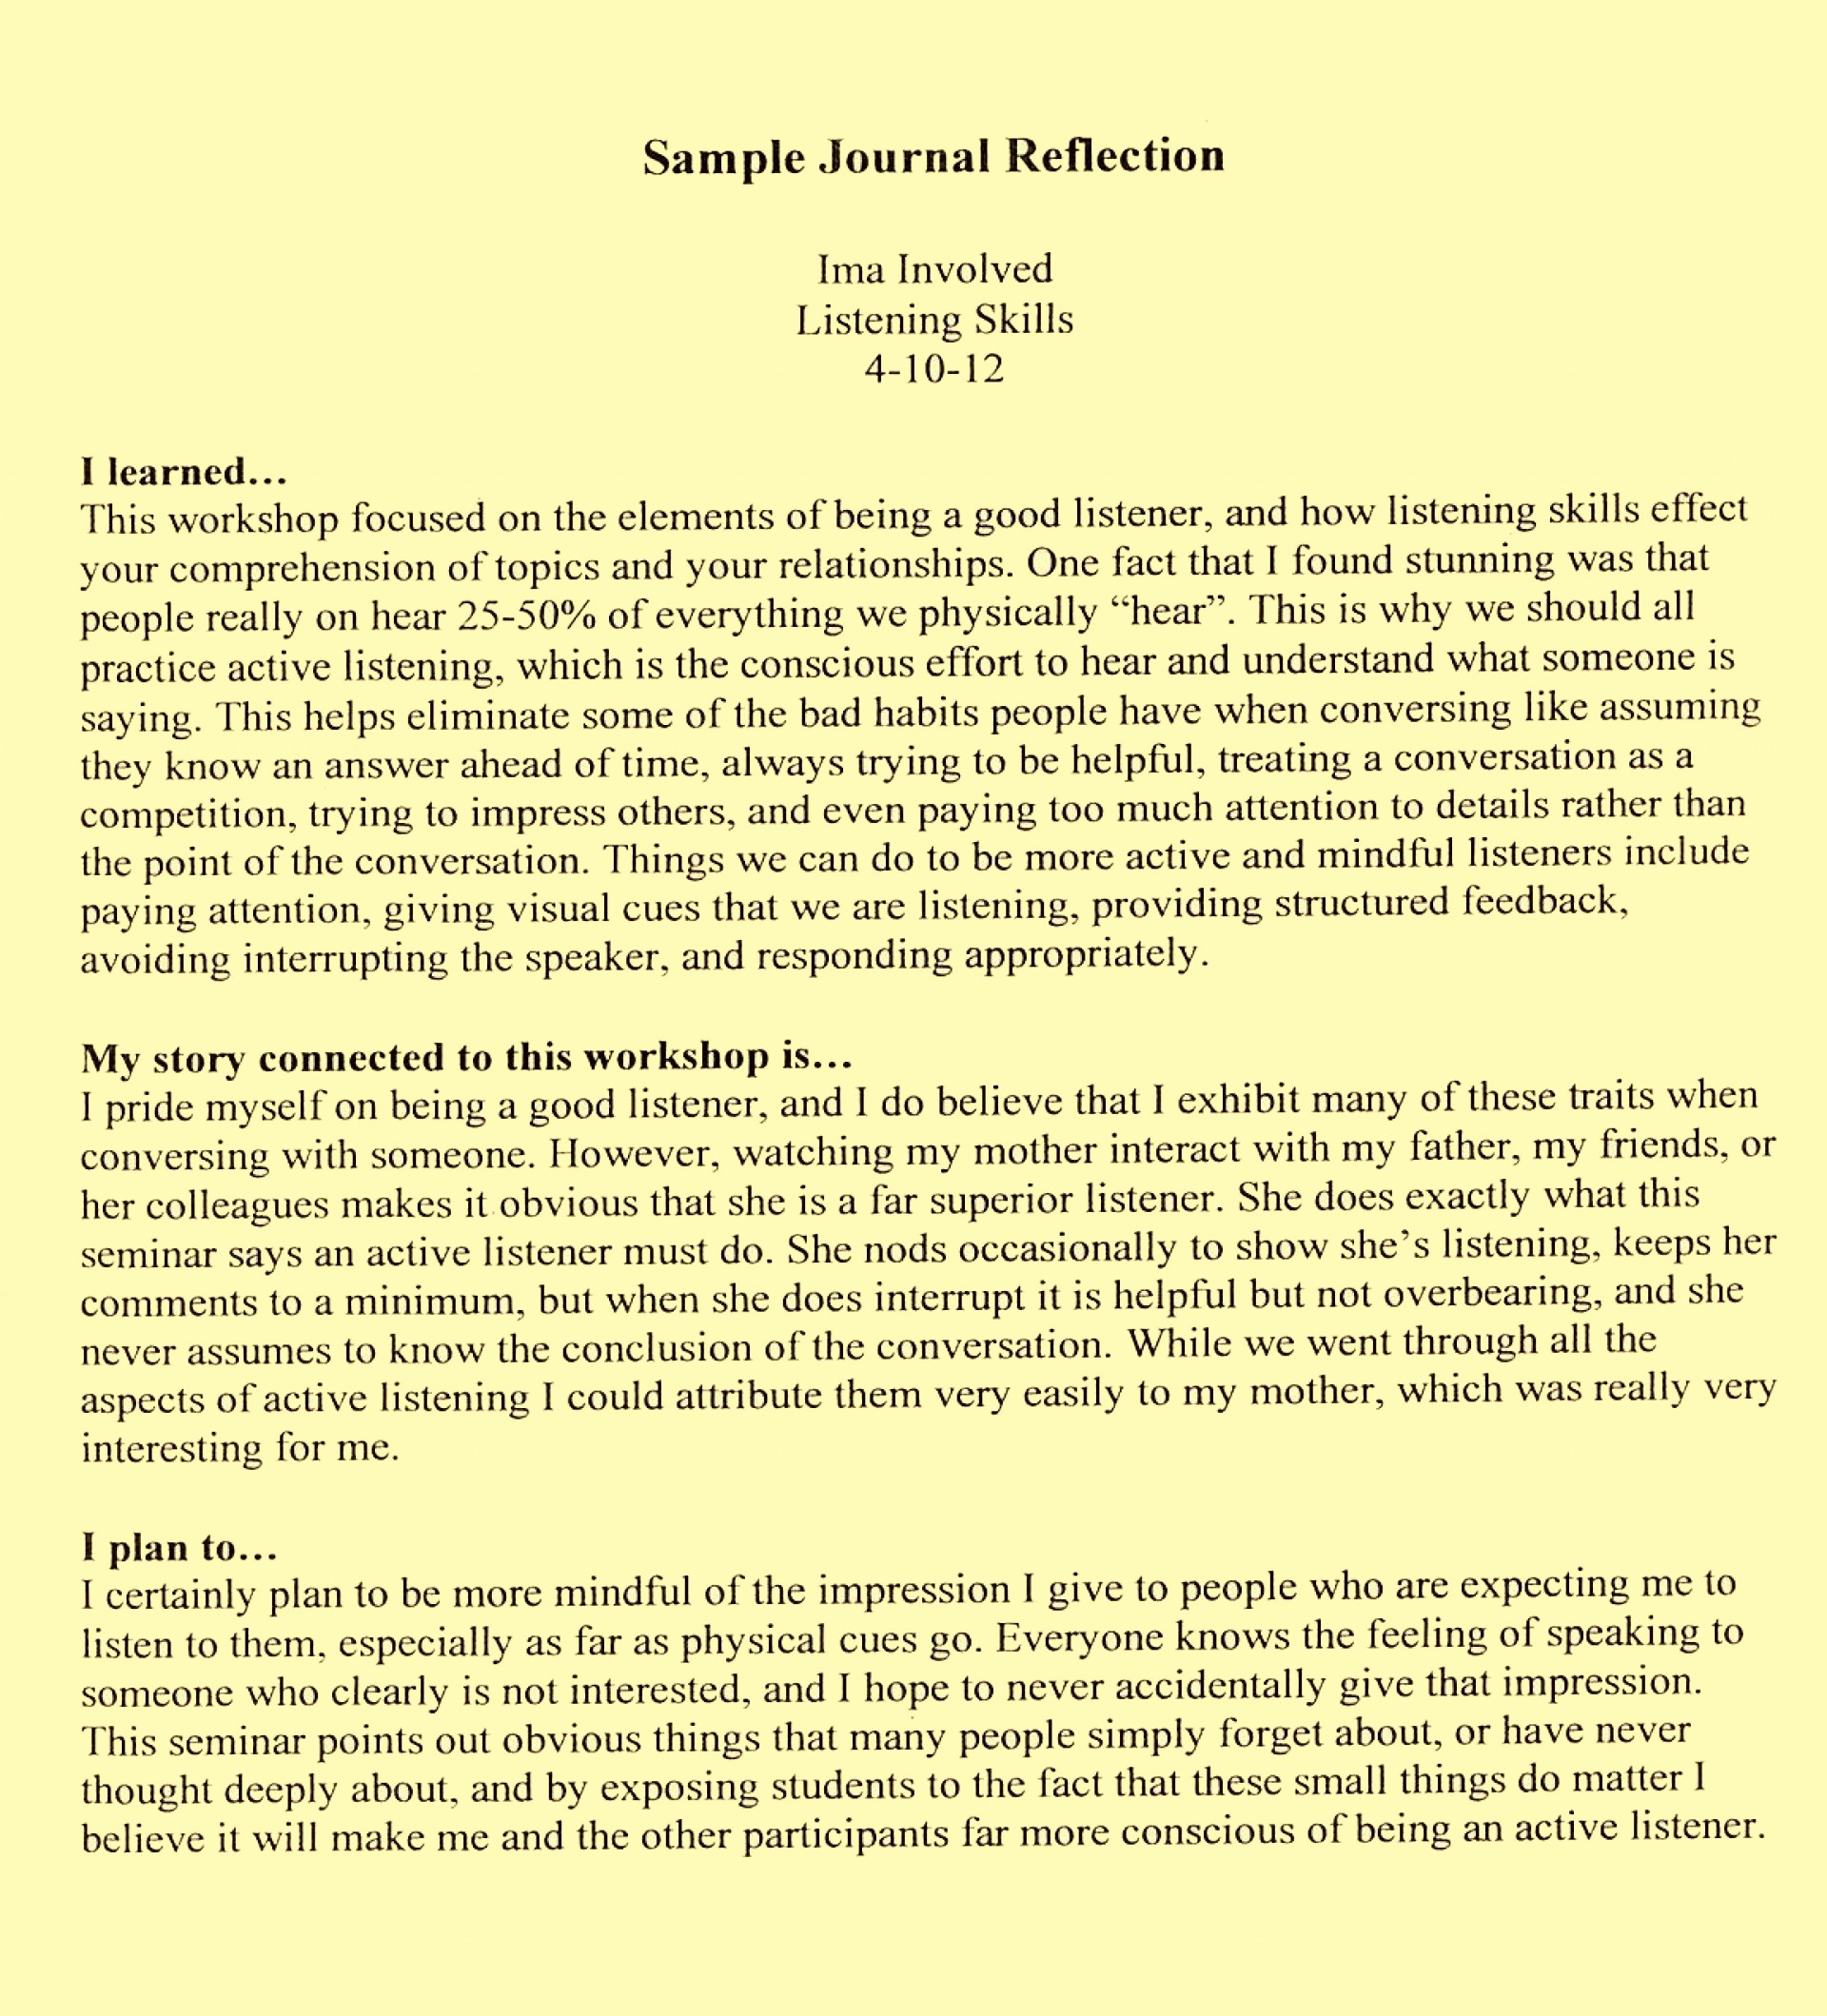 014 Essay Example Reworder Reflective Personal Writers Reflection Automatic Writing Prog Affiliate Program Summer College Programs On Indian Space Programme Programming Language For High Magnificent Best Rewriter Software Free Download App 1920